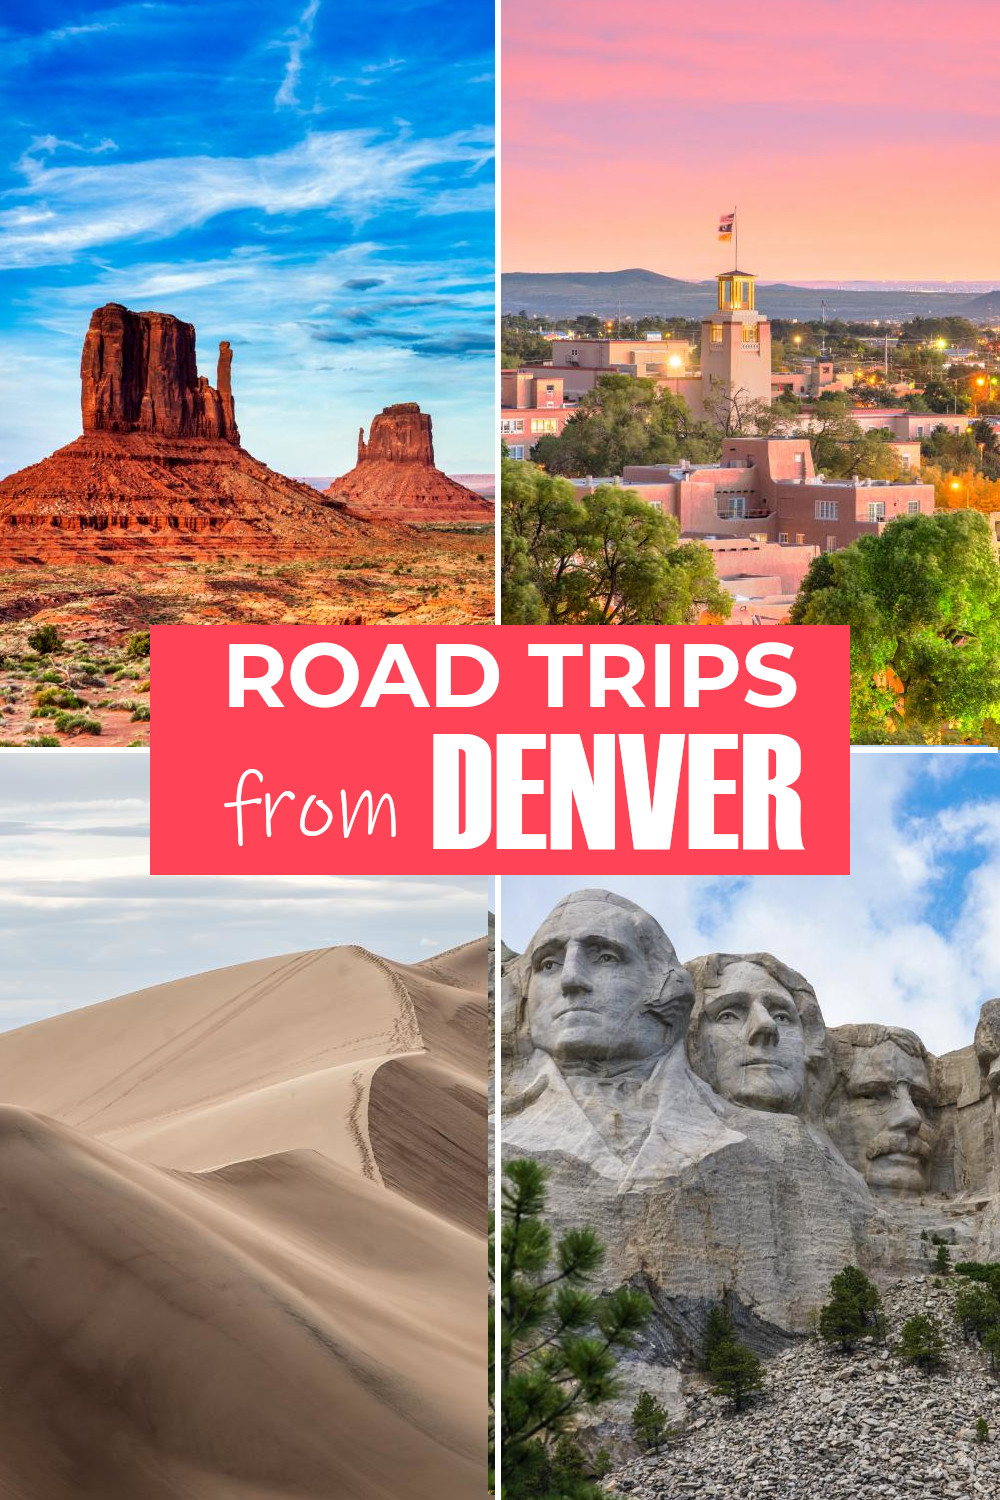 Best road trips from Denver - 20 itineraries that include National Parks, city breaks, mountains and amazing roads